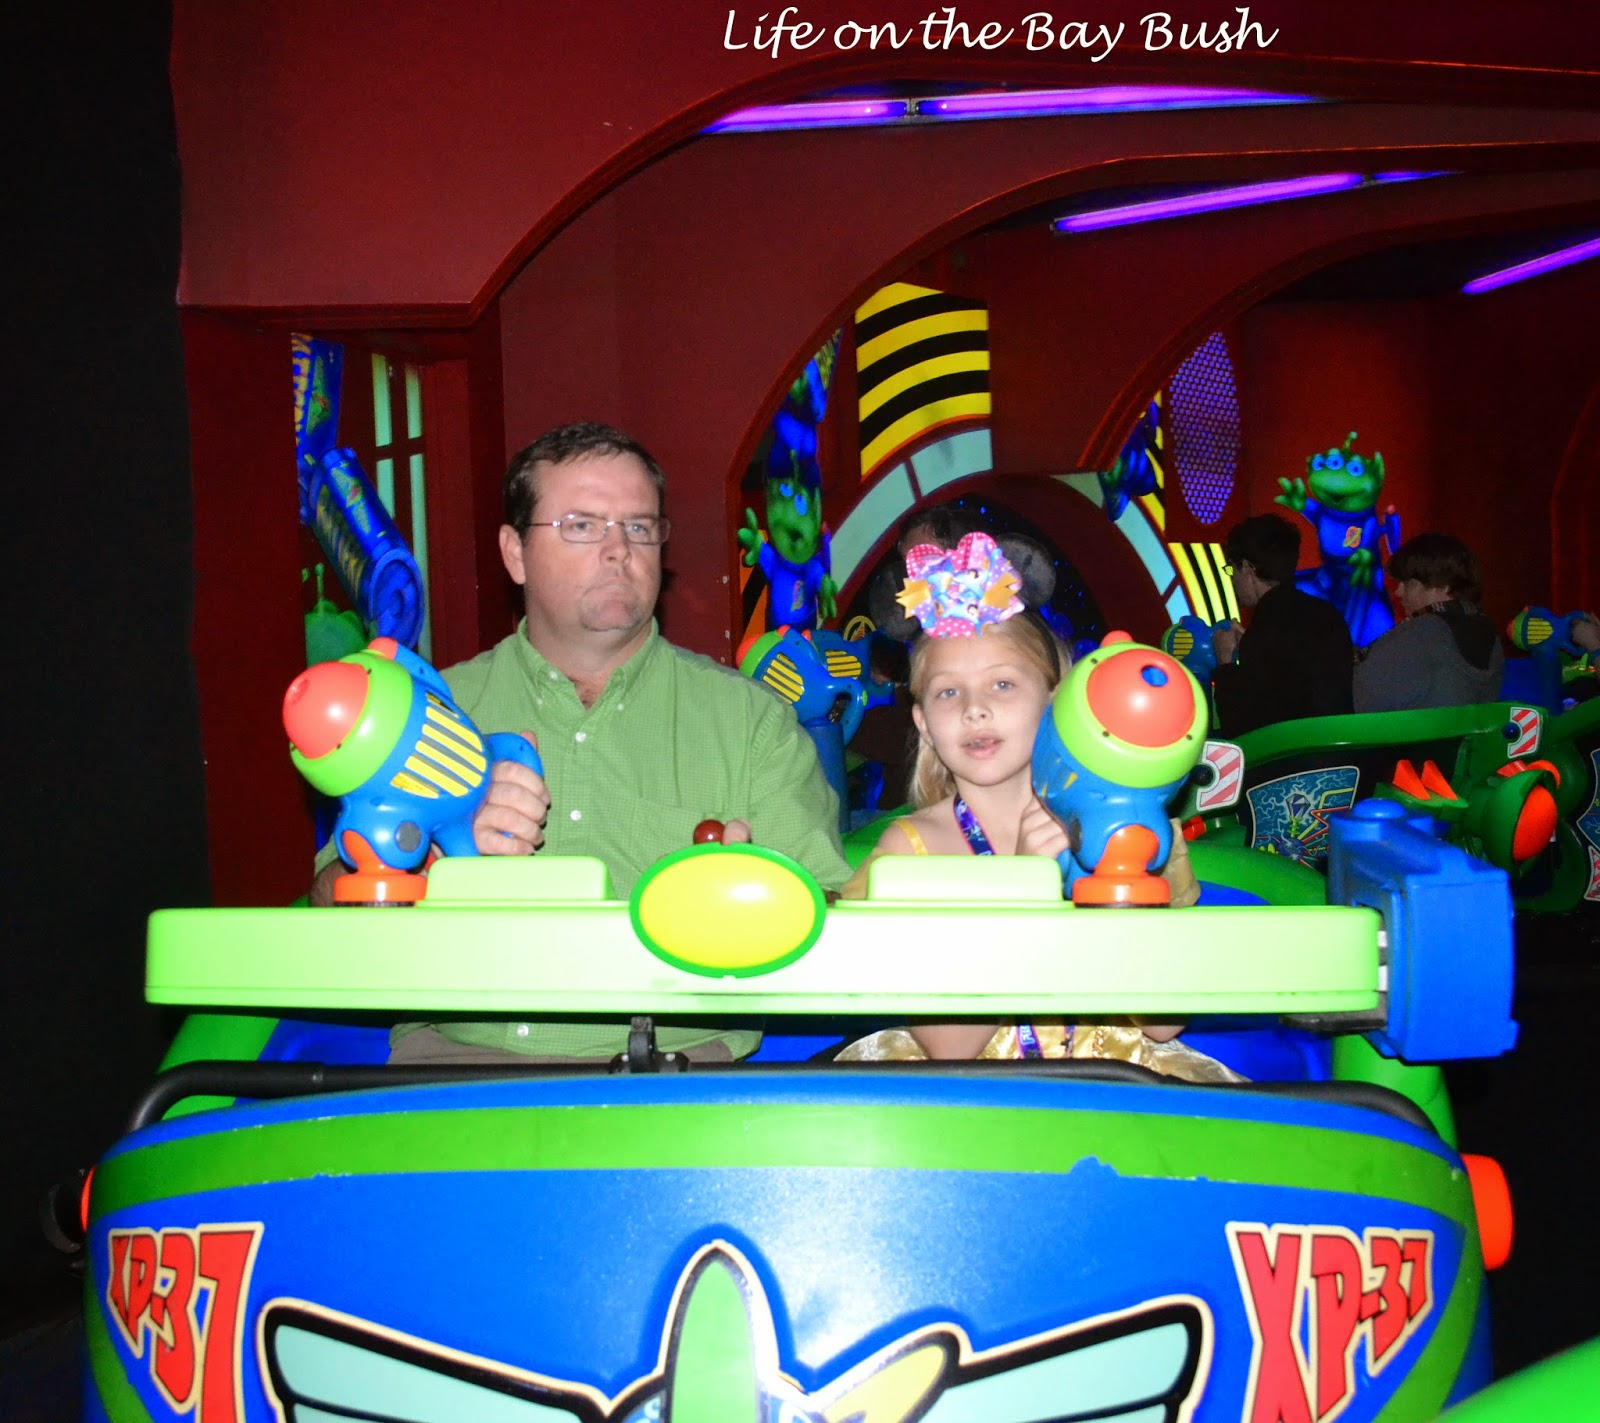 Disney's Magic Kingdom Buzz Lightyear ride